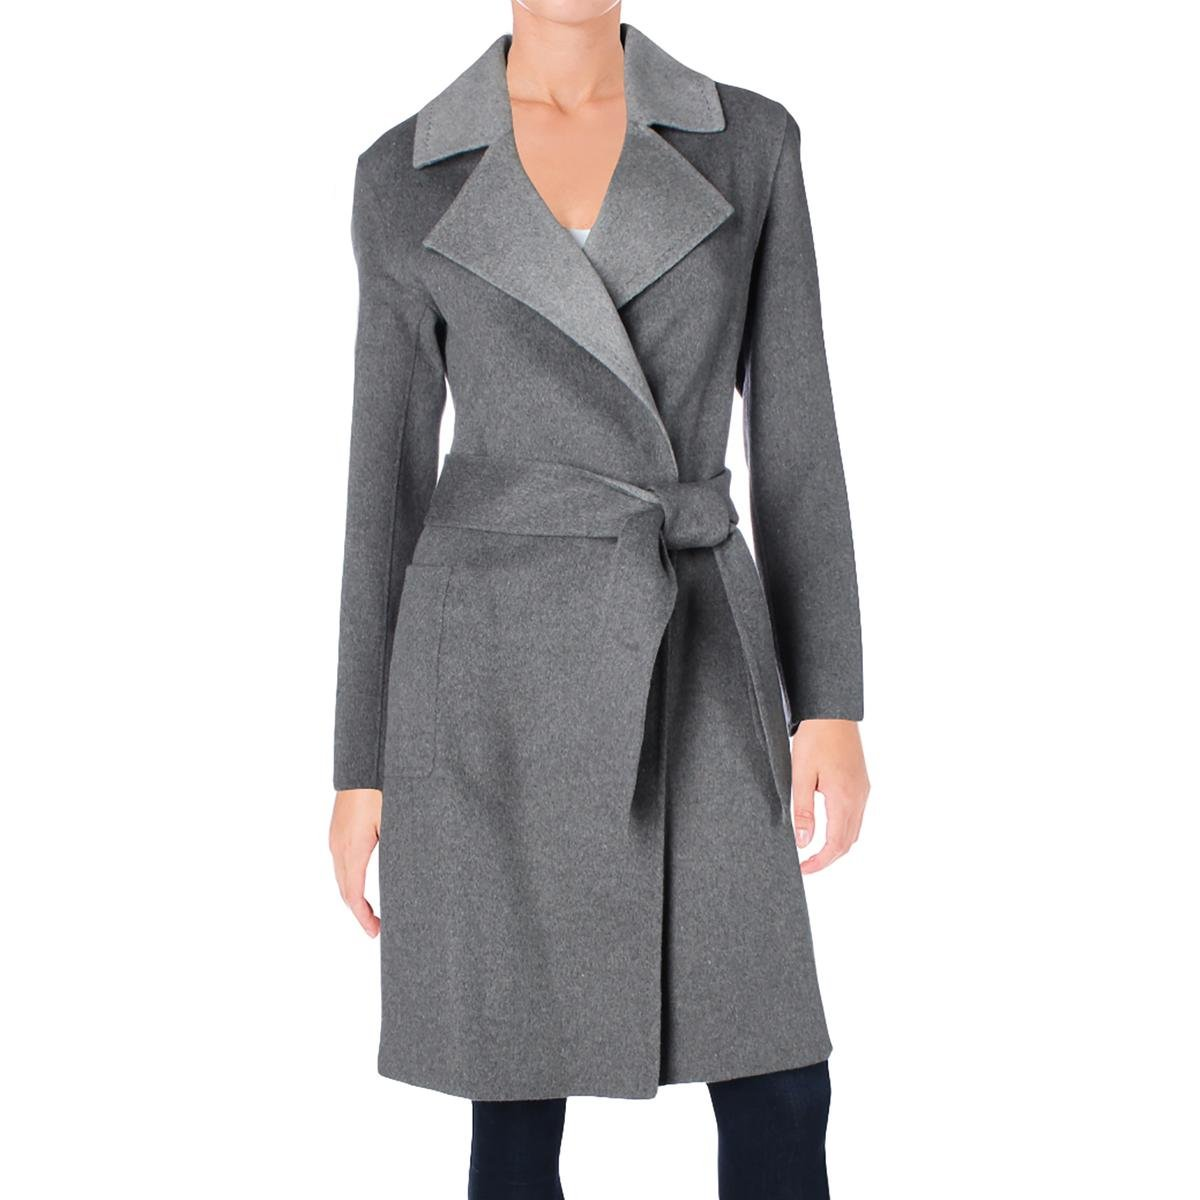 Nanette Lepore Womens Wool Notched Lapel Wrap Coat Gray XL